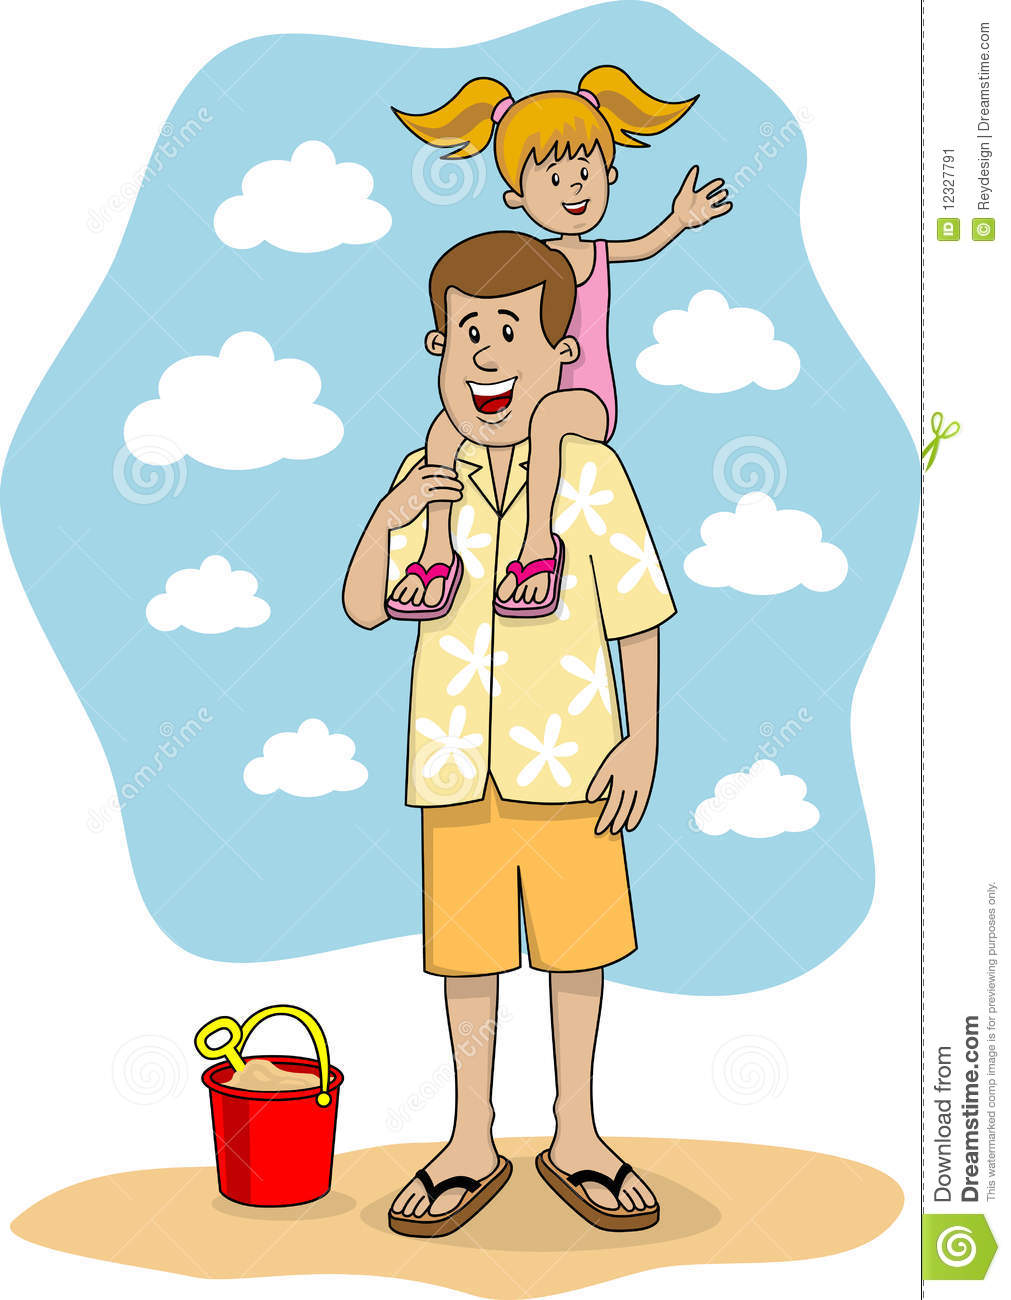 Father And Daughter Waving Stock Image - Image 12327791-7752